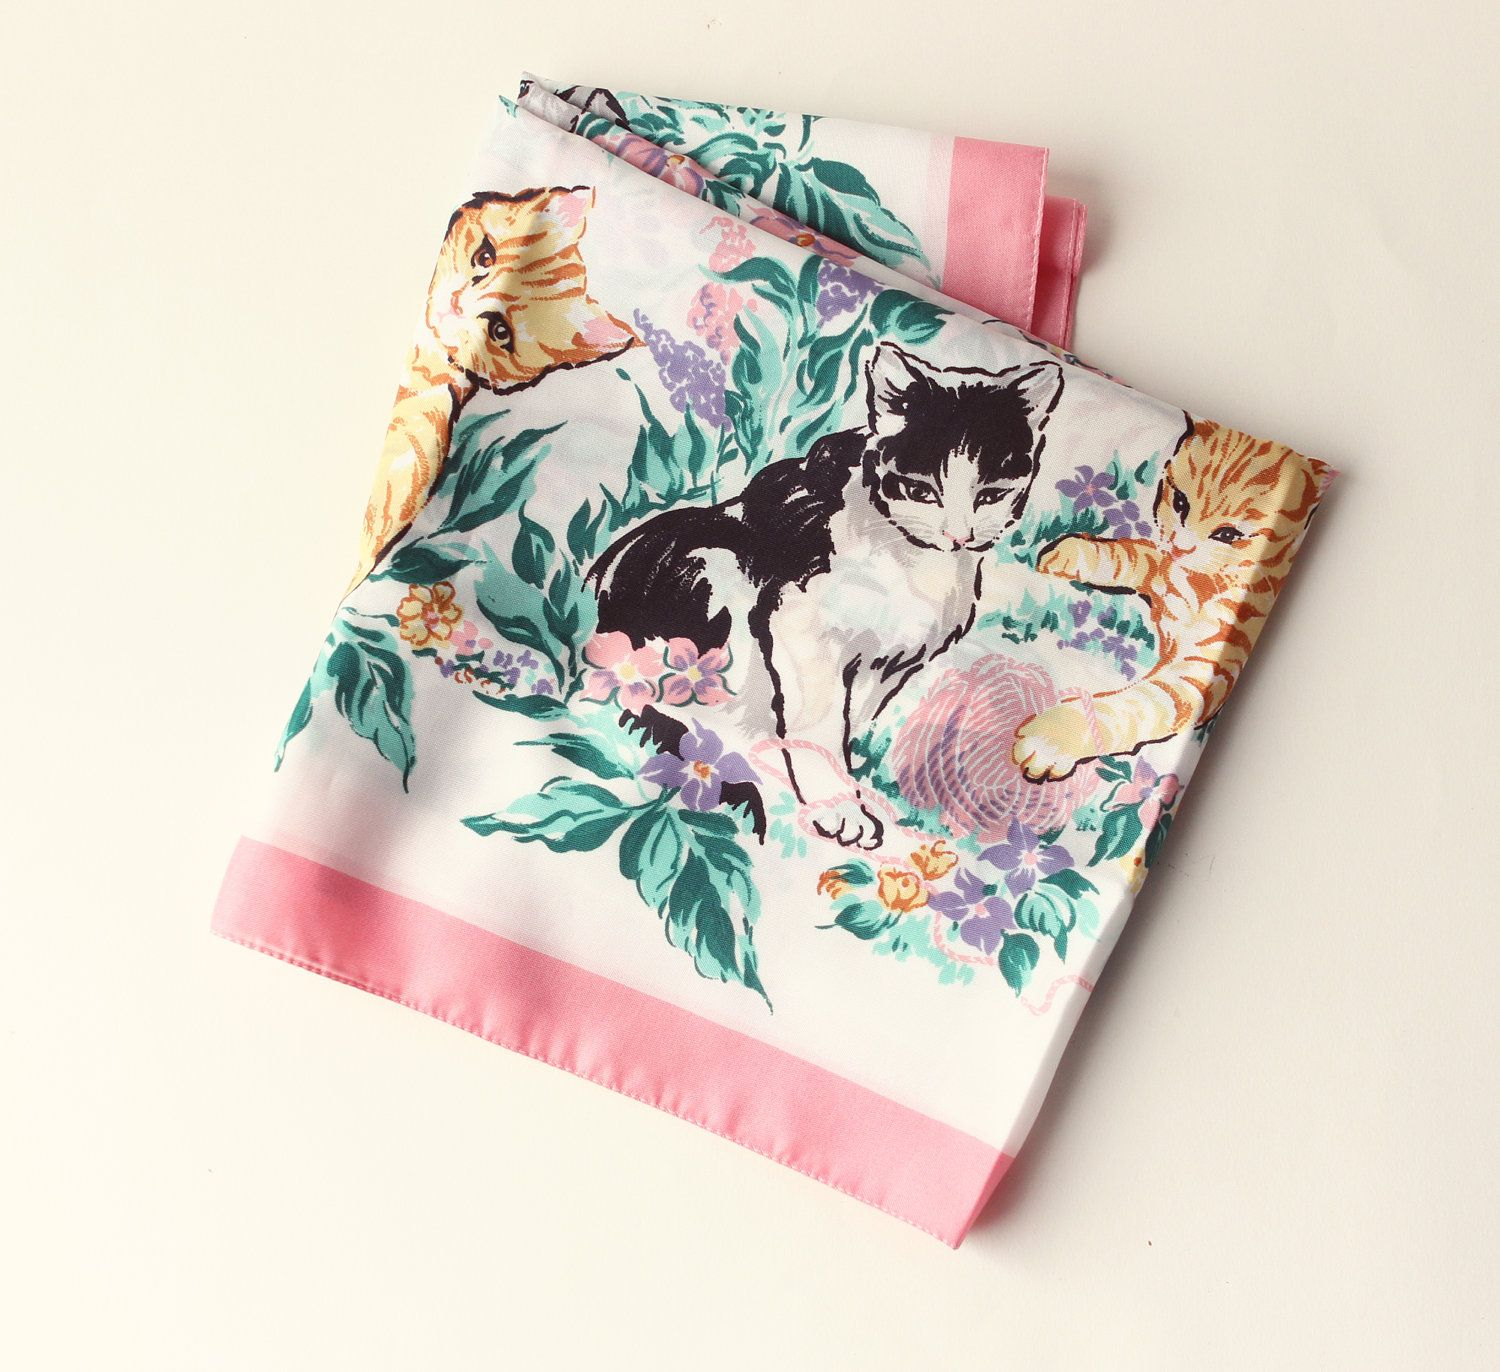 VINTAGE SCARF cat scarf, kittens playing 1980s, AVON